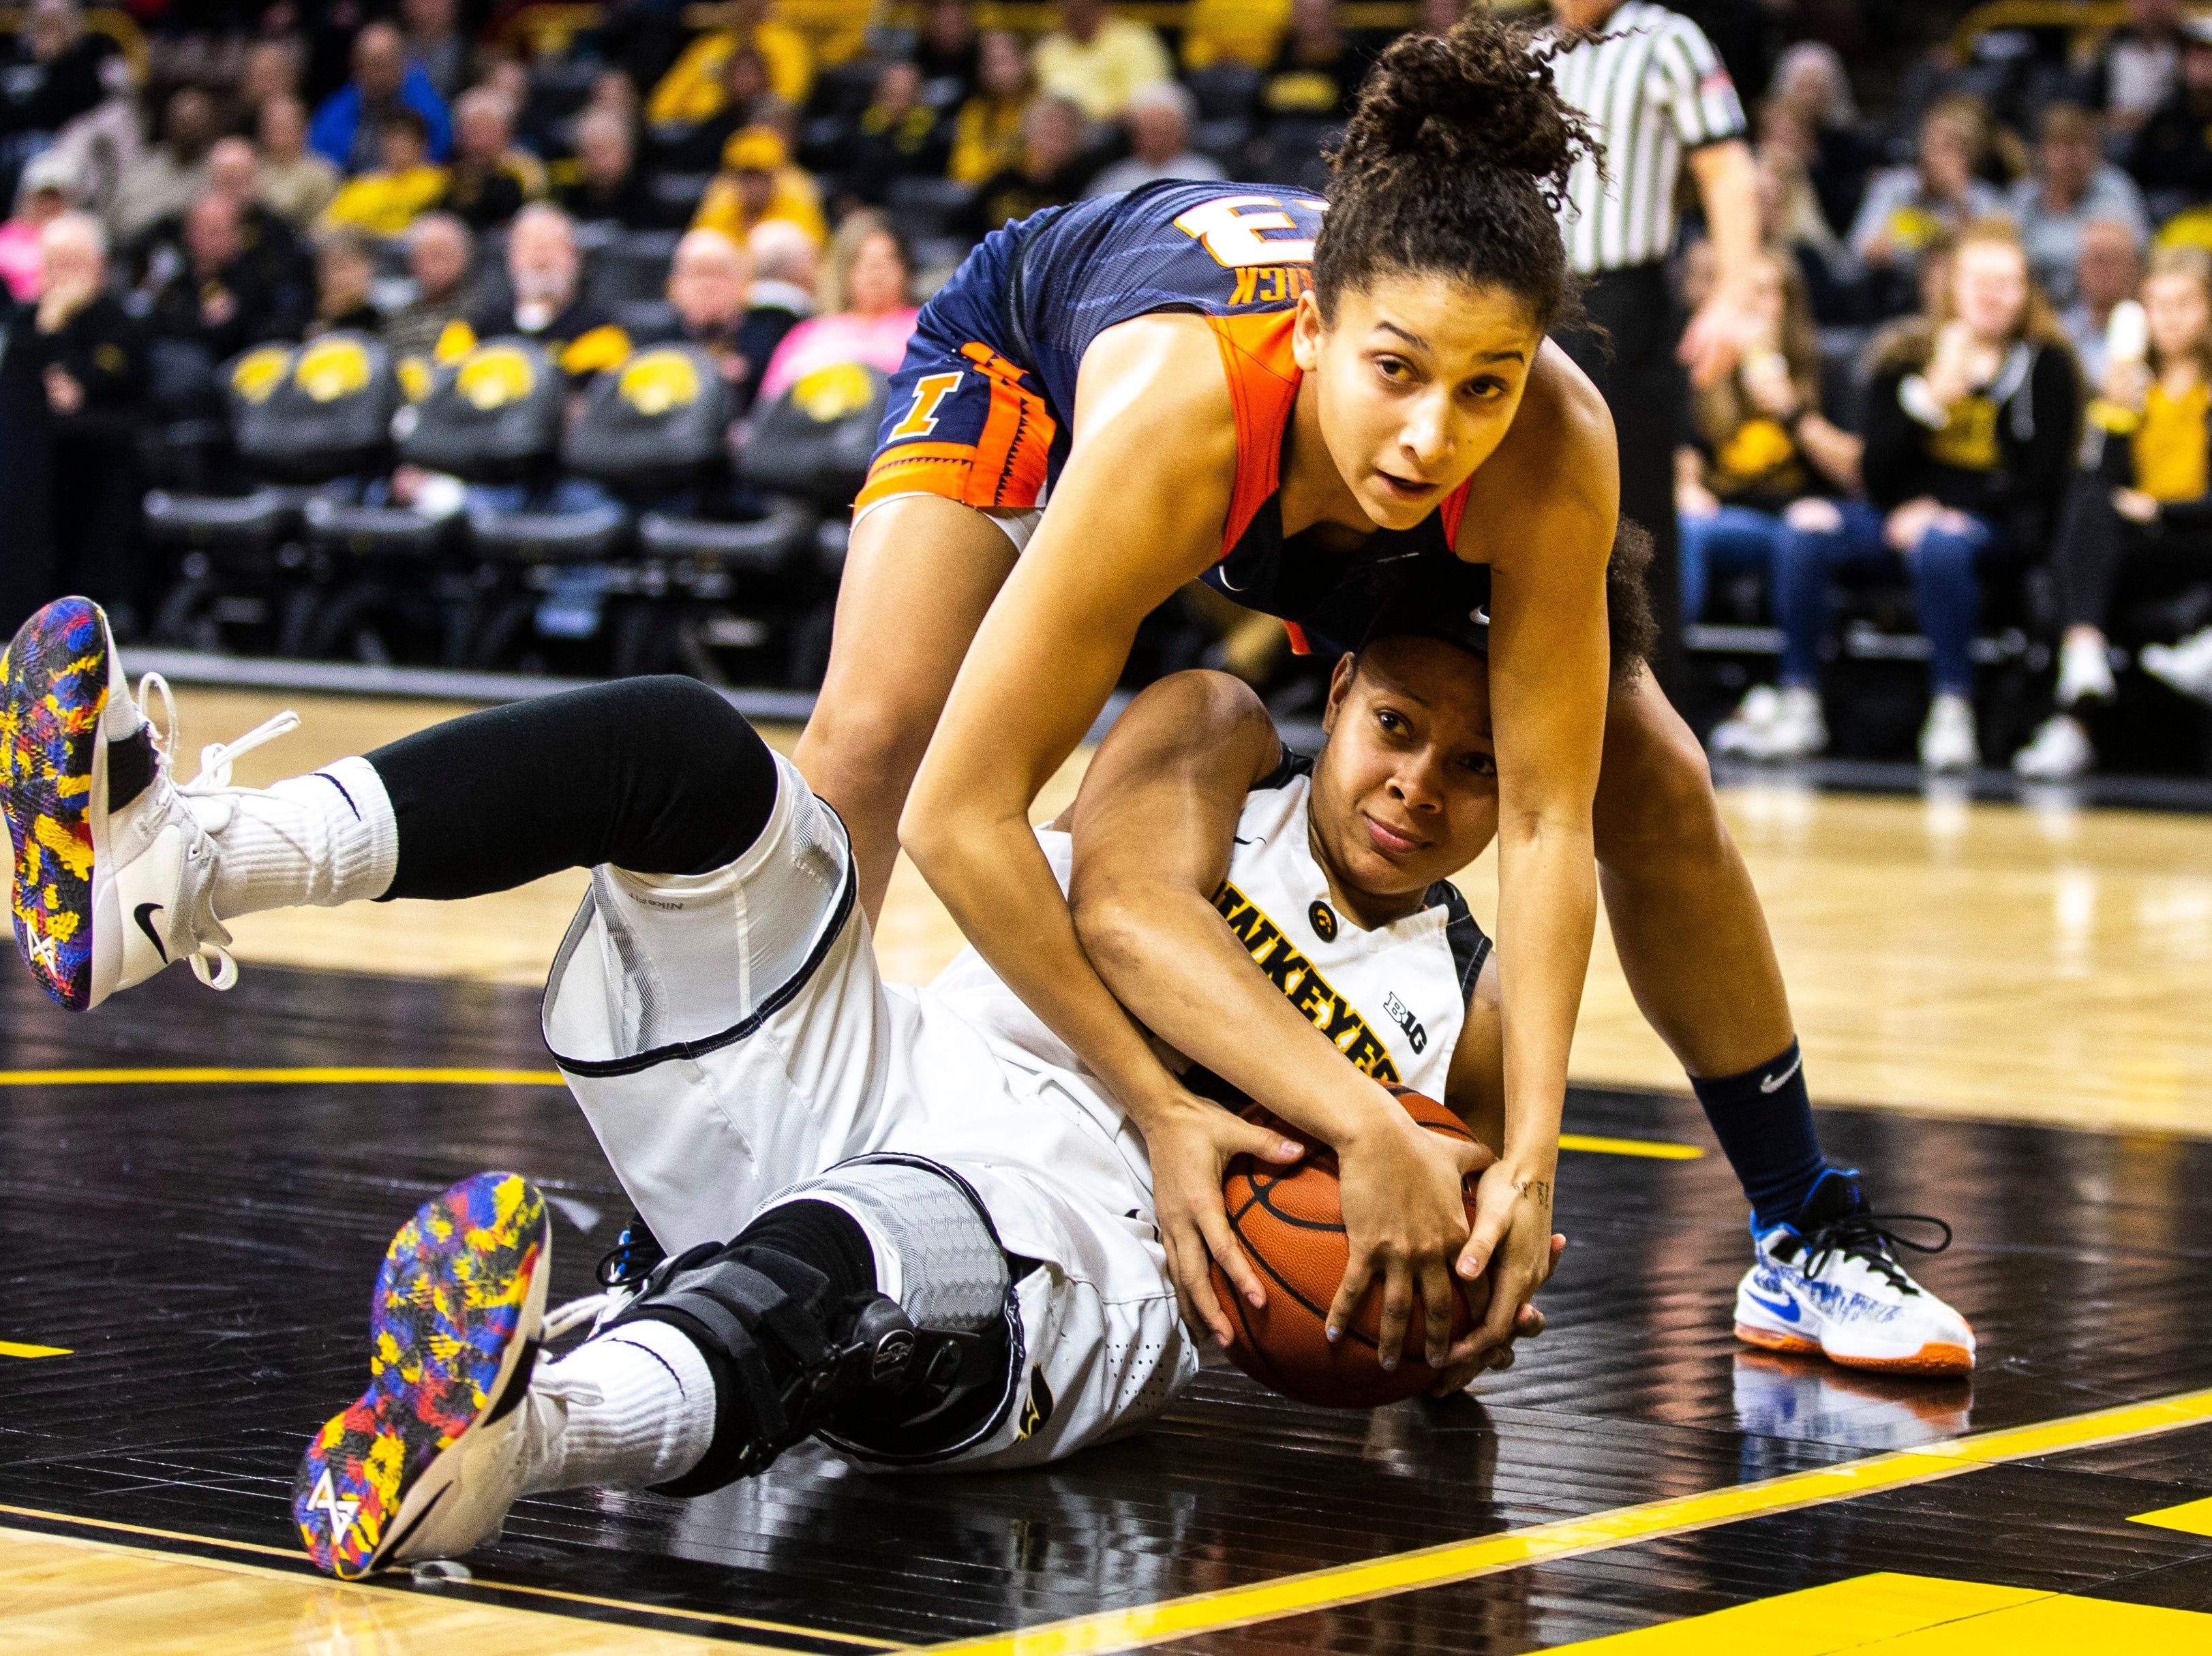 Iowa guard Tania Davis (11) and Illinois guard Jaelyne Kirkpatrick (23) battle for a jump ball during a NCAA Big Ten Conference women's basketball game on Thursday, Feb. 14, 2019 at Carver-Hawkeye Arena in Iowa City, Iowa.